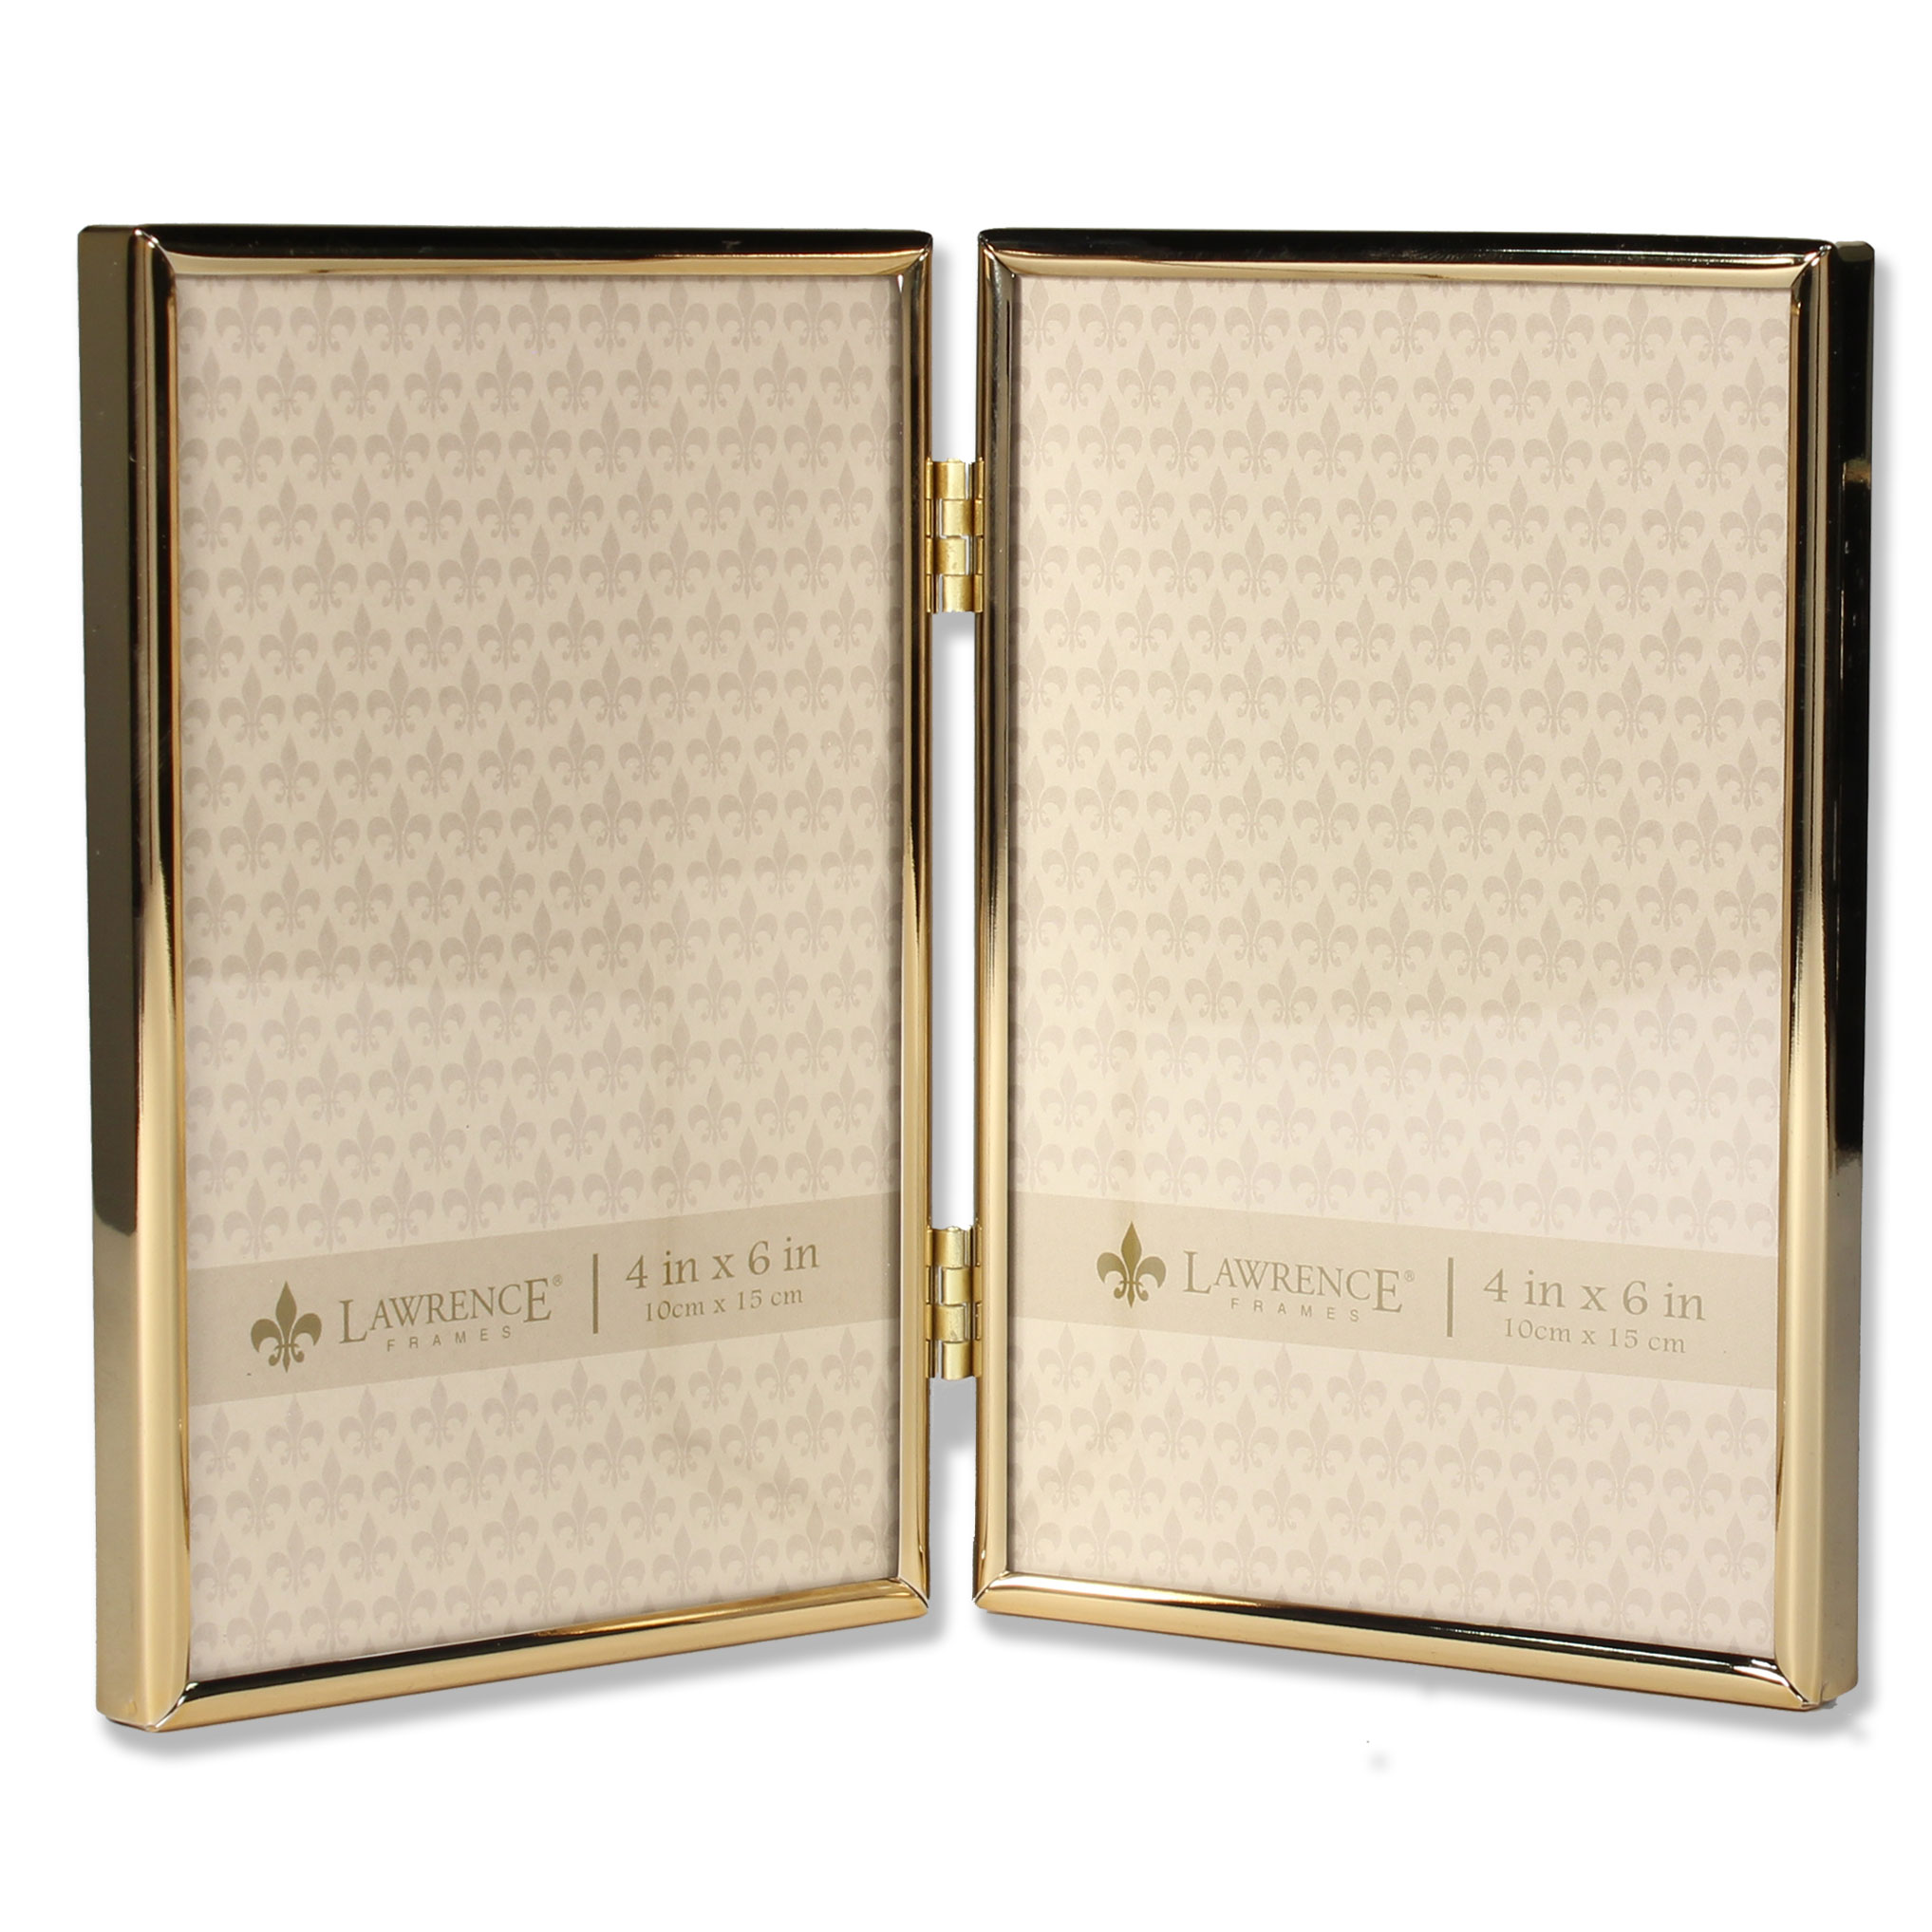 4x6 Hinged Double Simply Gold Metal Picture Frame | PhotoFrames.net